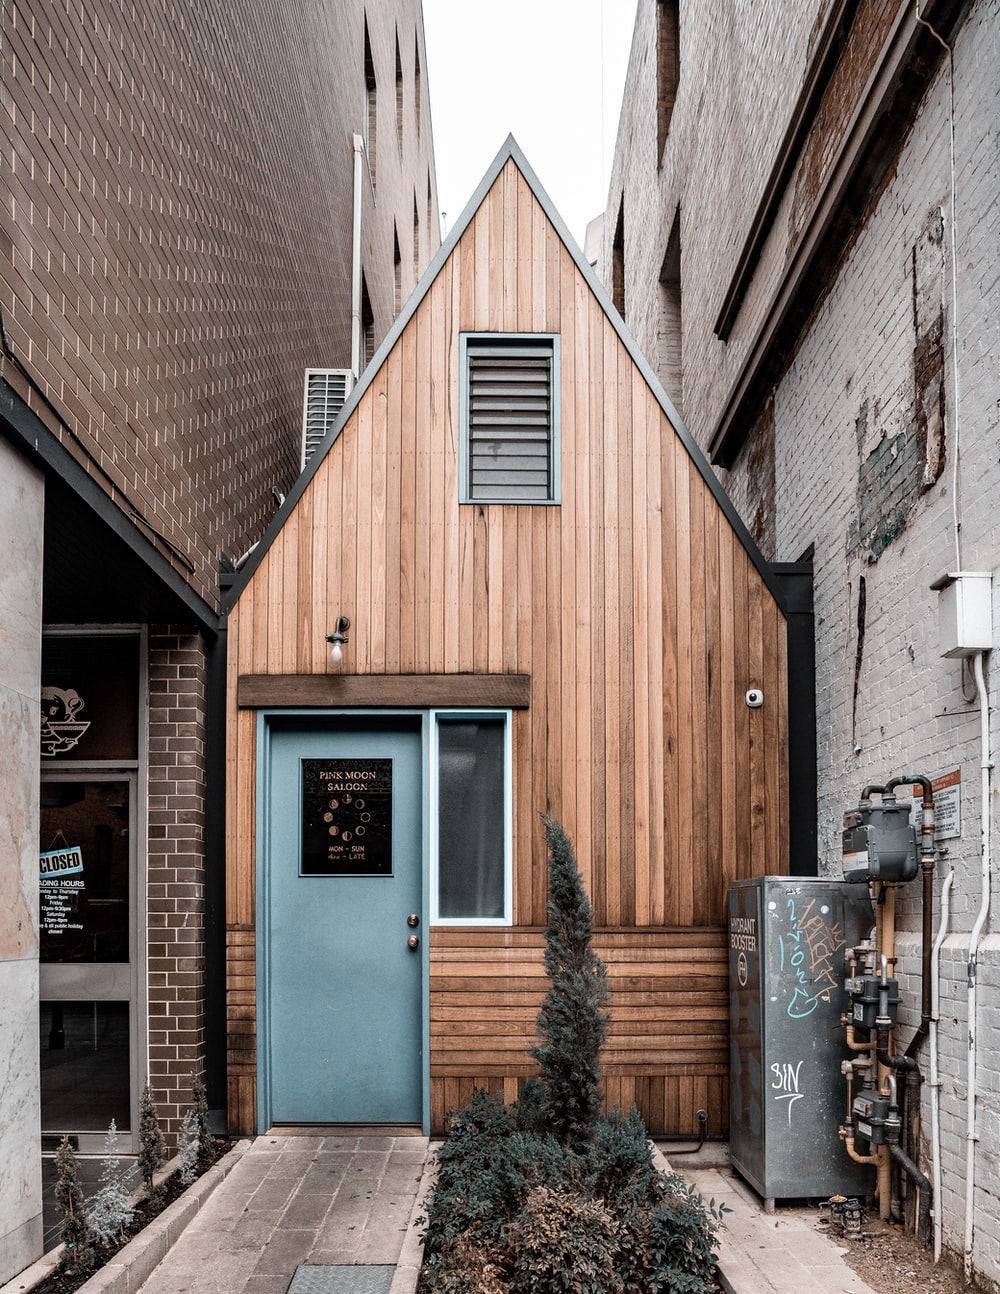 brown wooden house at the alley between buildings